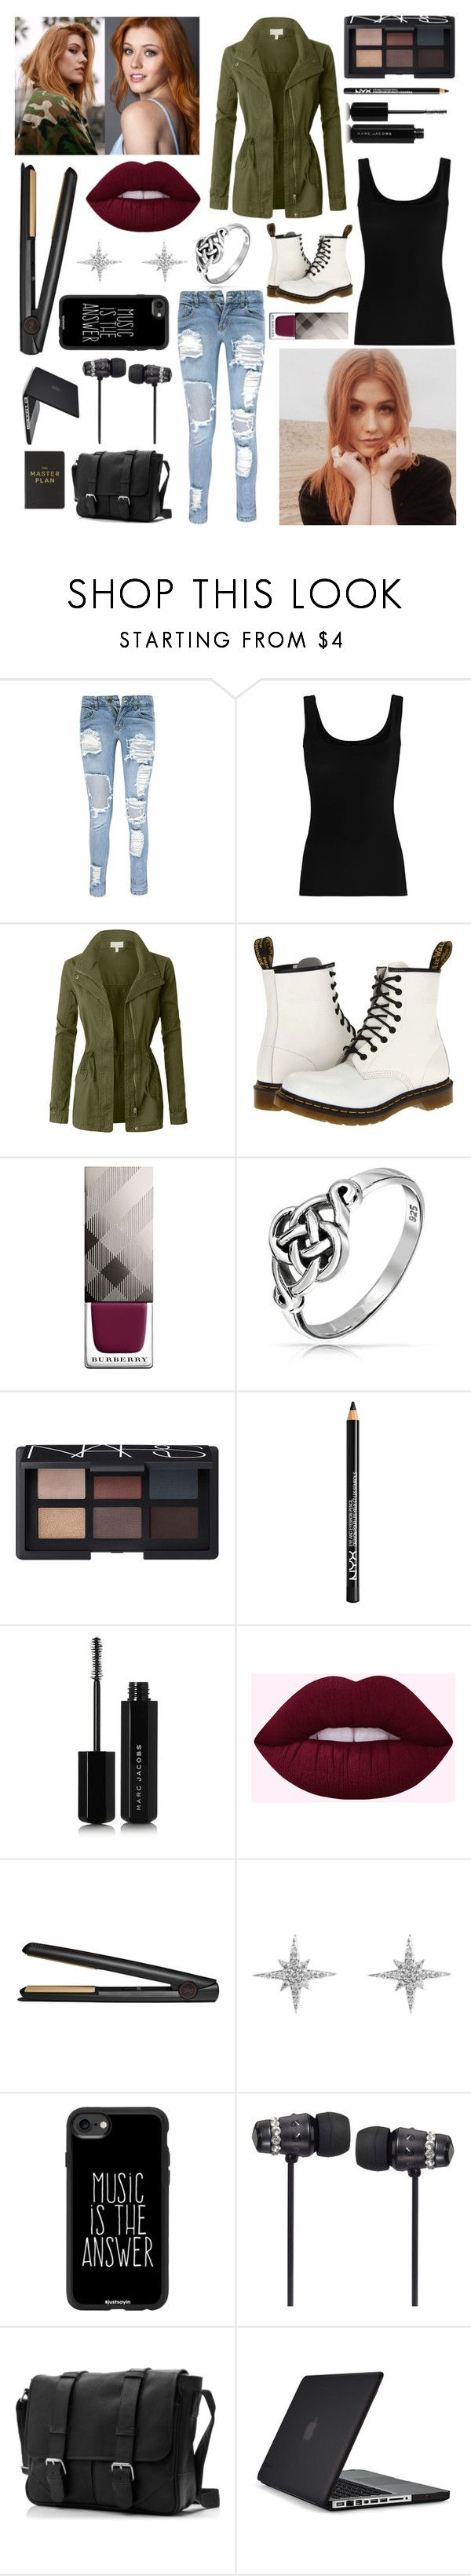 """""""Avis' College orientation outfit"""" by the-annoying-fangirl ❤ liked on Polyvore featuring Boohoo, Twenty, LE3NO, Dr. Martens, Burberry, Bling Jewelry, NARS Cosmetics, NYX, Marc Jacobs and GHD"""